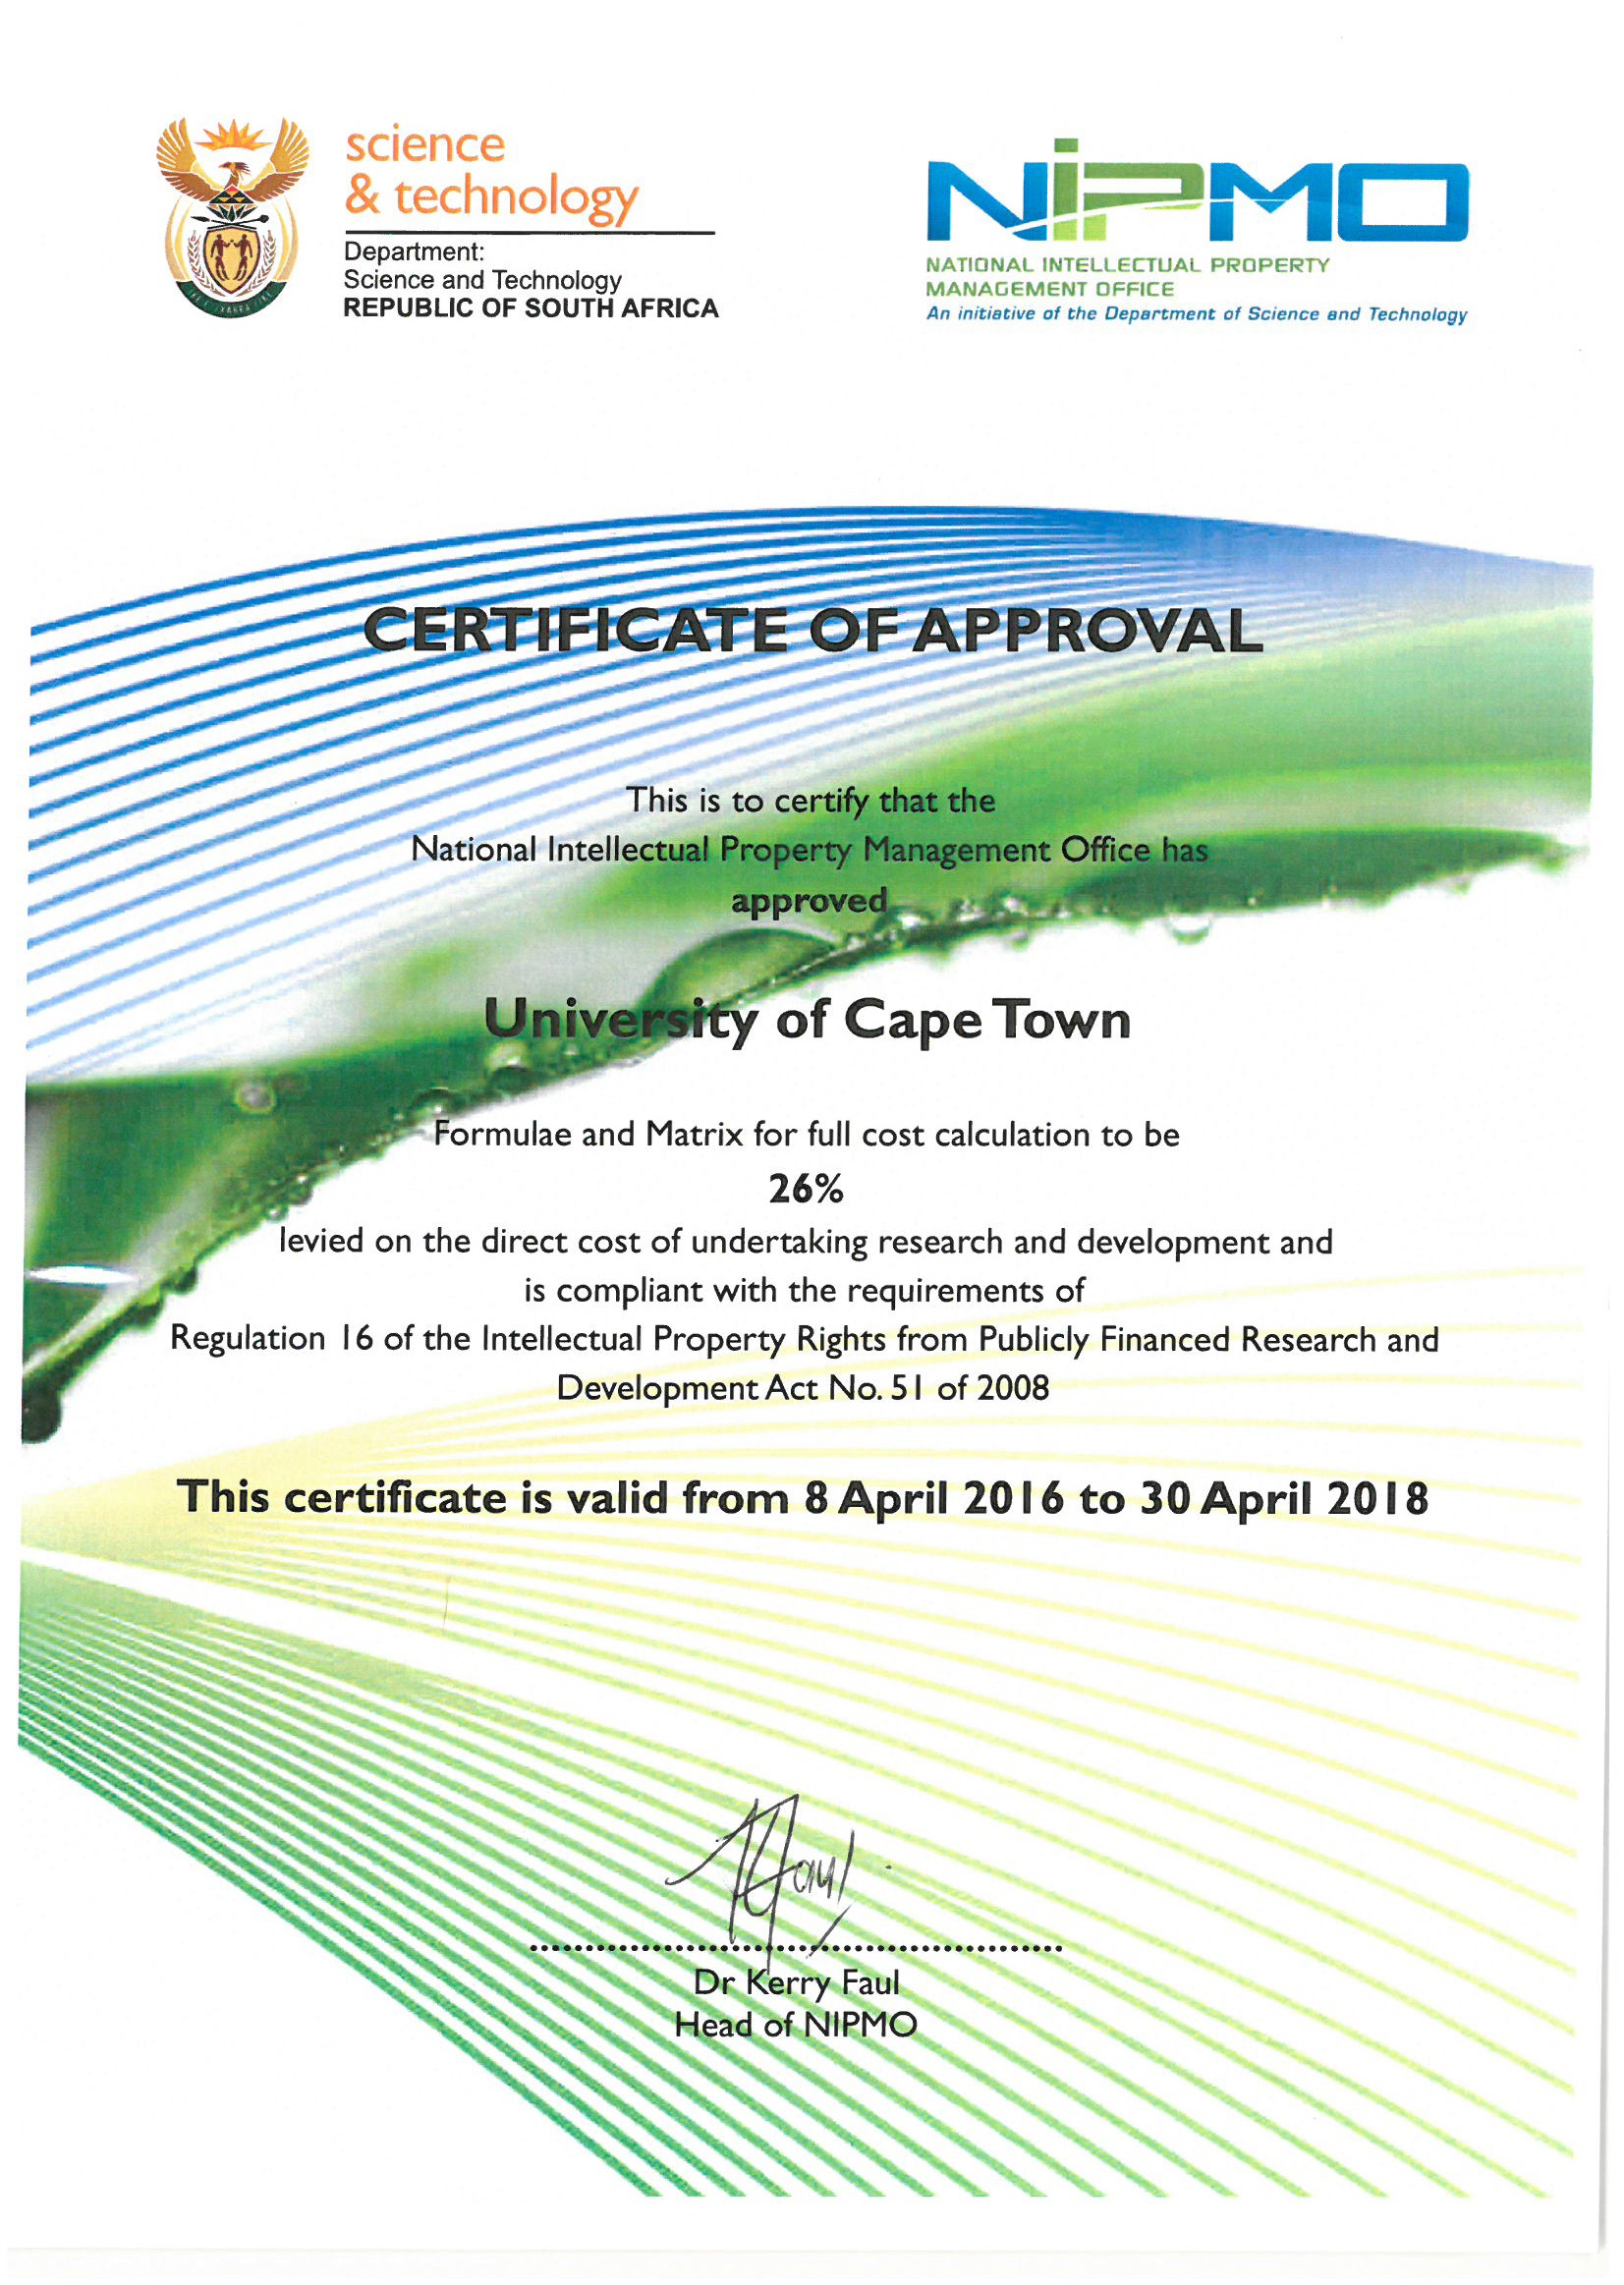 Administrative information research contracts and innovation full cost matrix approval certificate xflitez Image collections